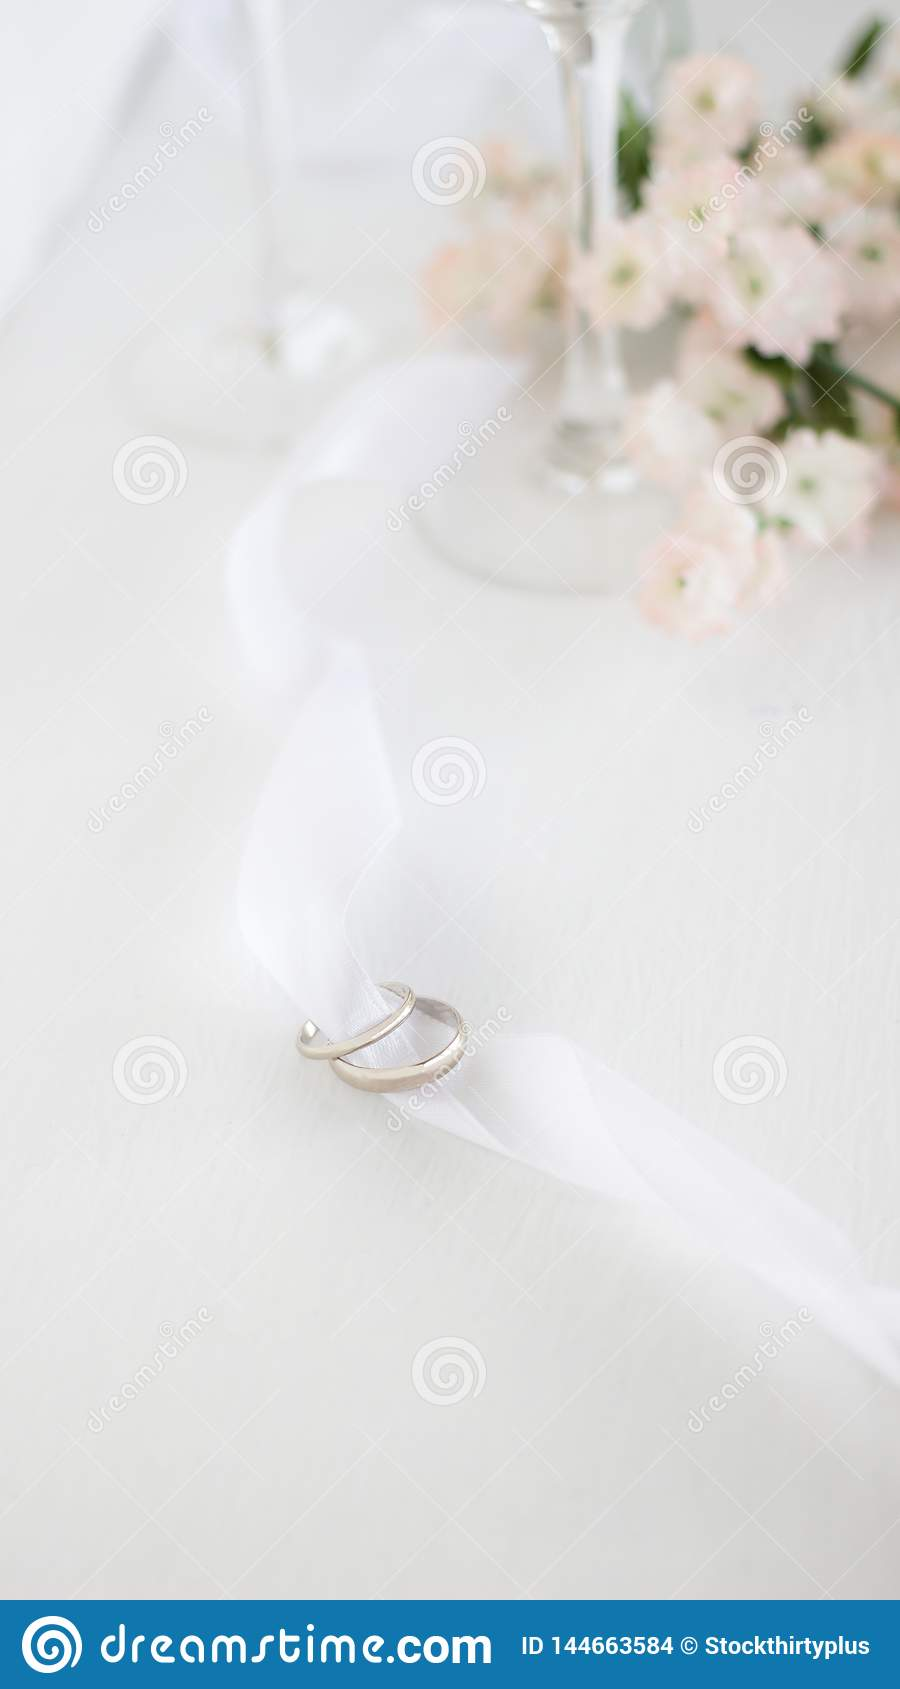 Two wedding rings on white ribbon. Light blur background of flowers and champane glasses .